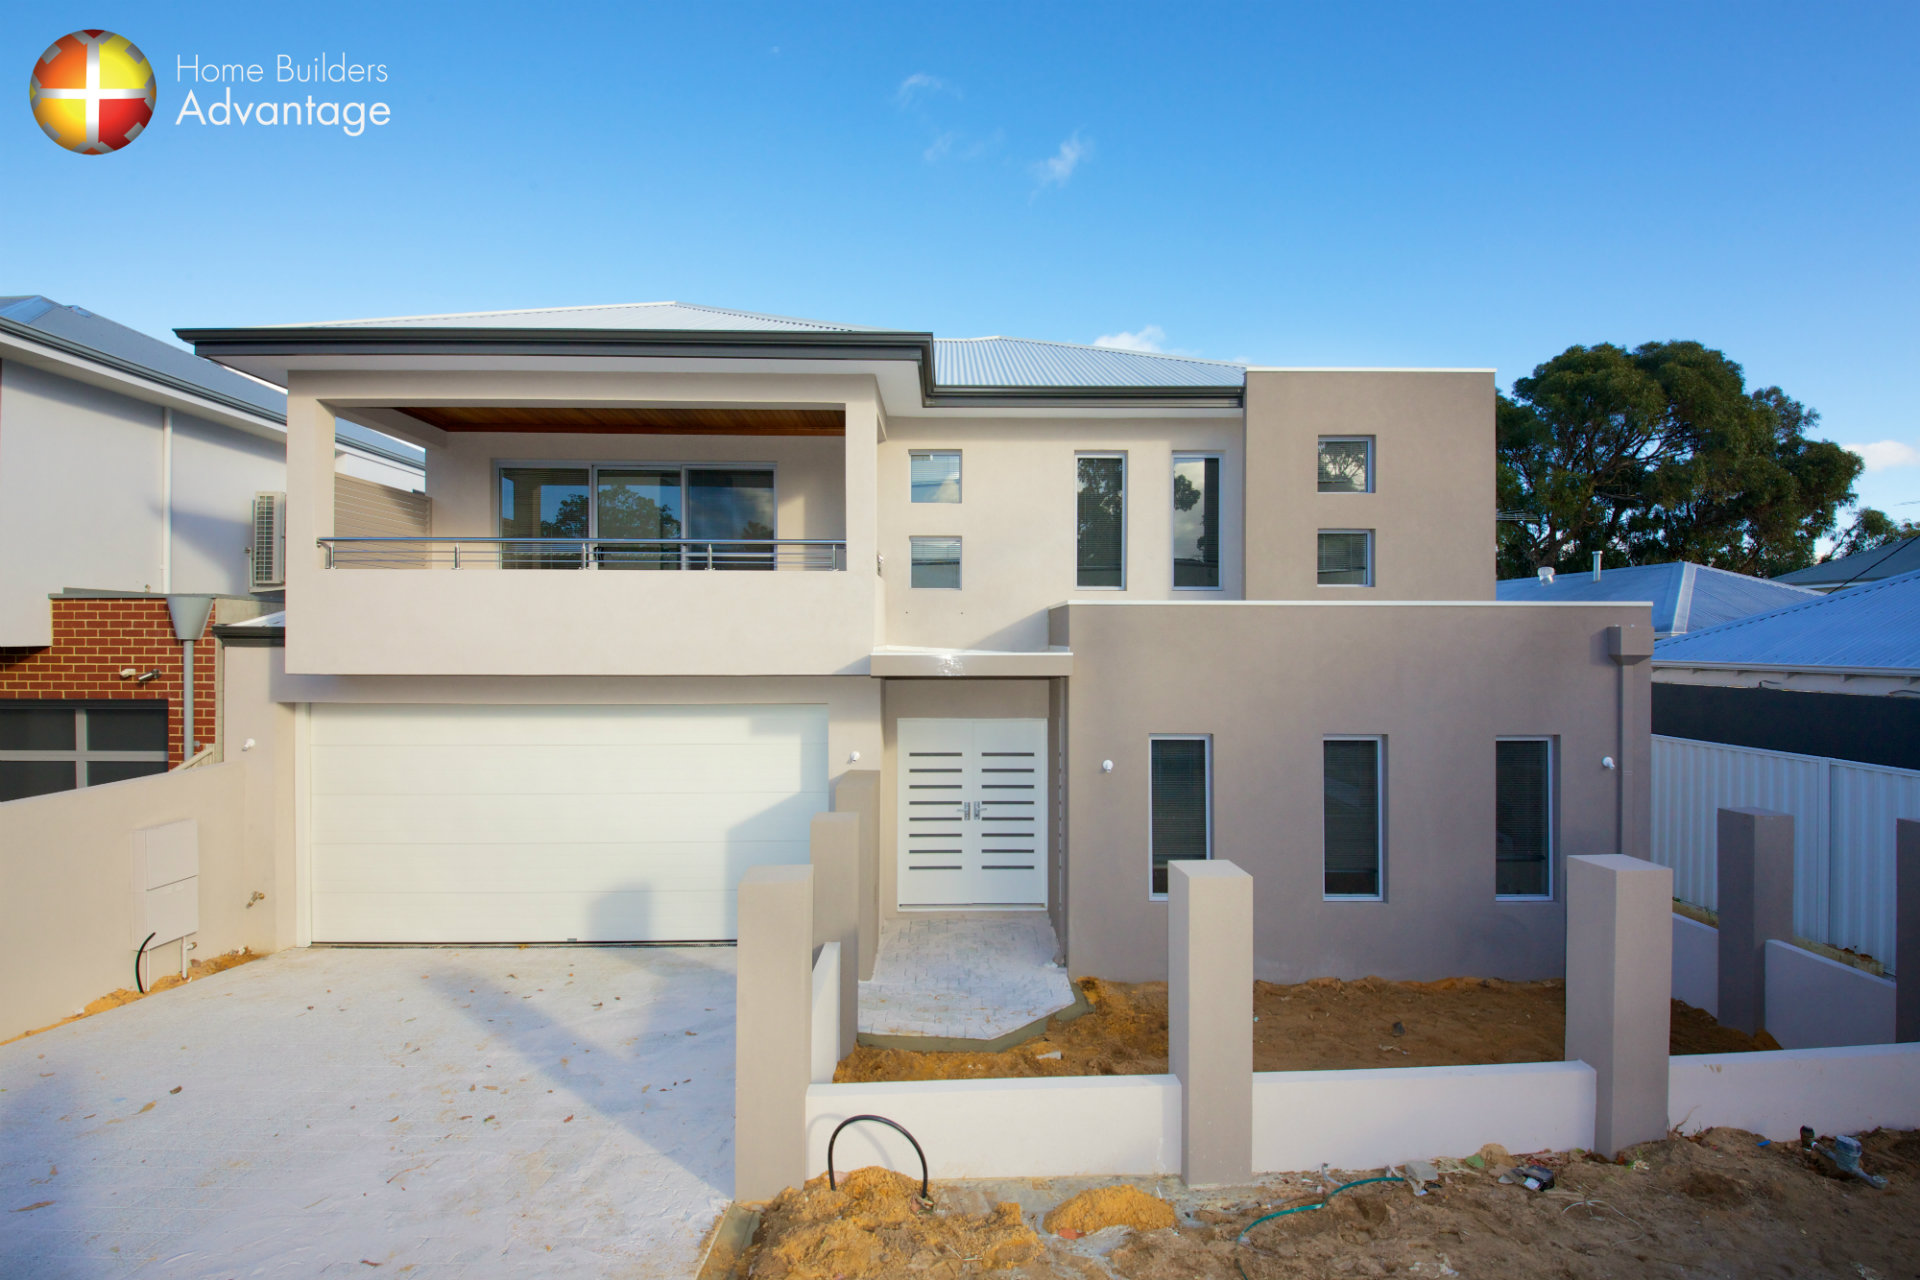 Custom home design from home builders advantage for Builders advantage